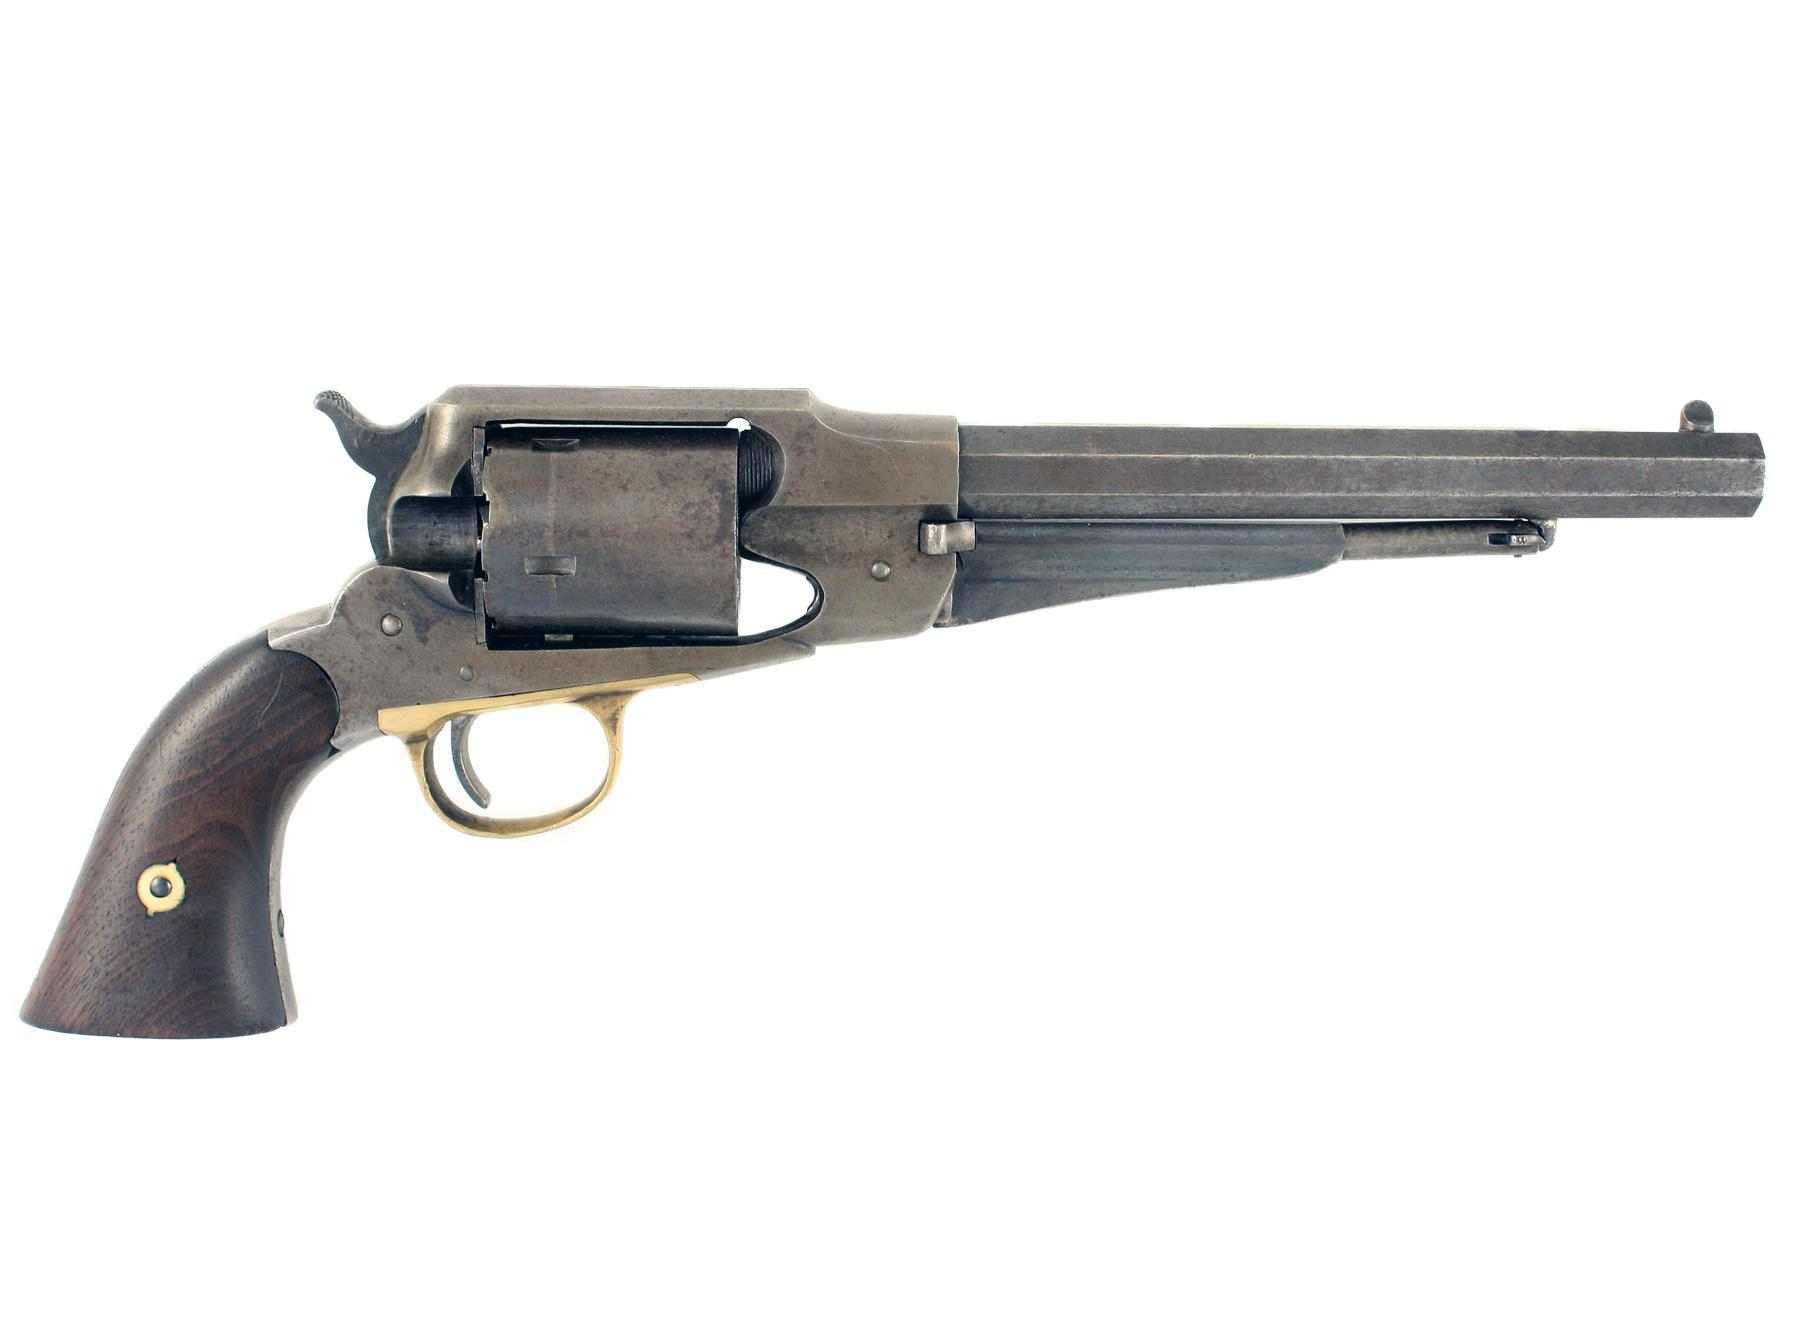 A Remington Rim-Fire Conversion